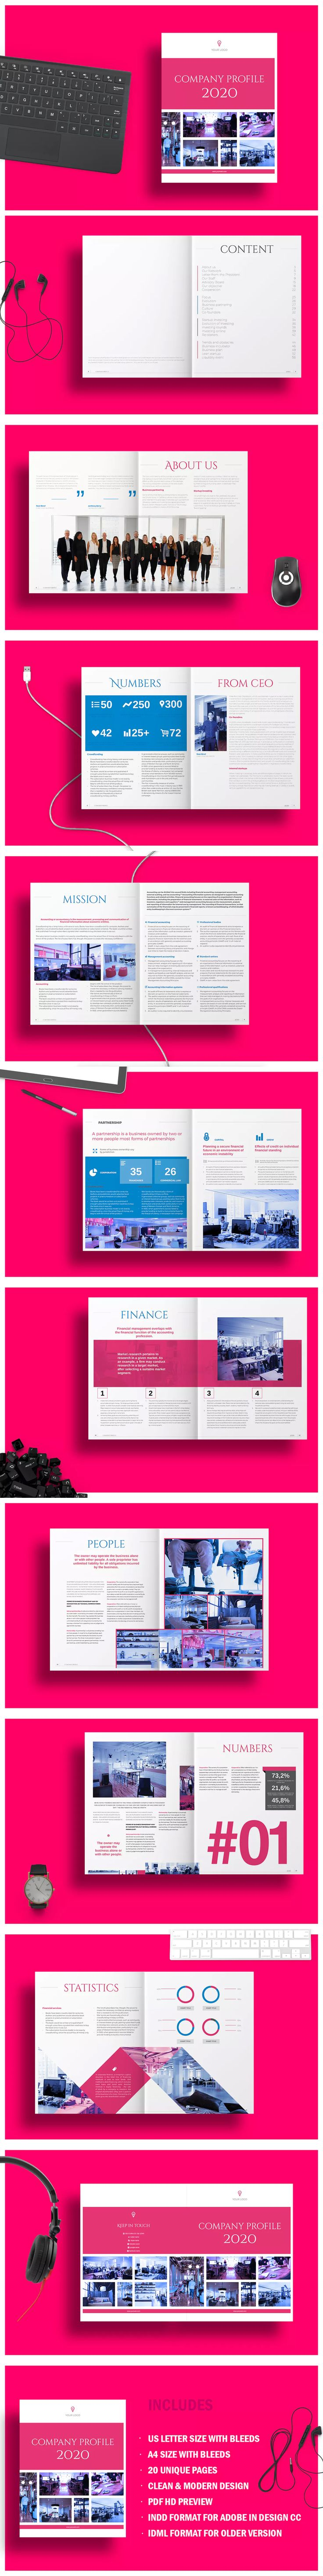 Company Profile 2020 Template InDesign INDD - A4